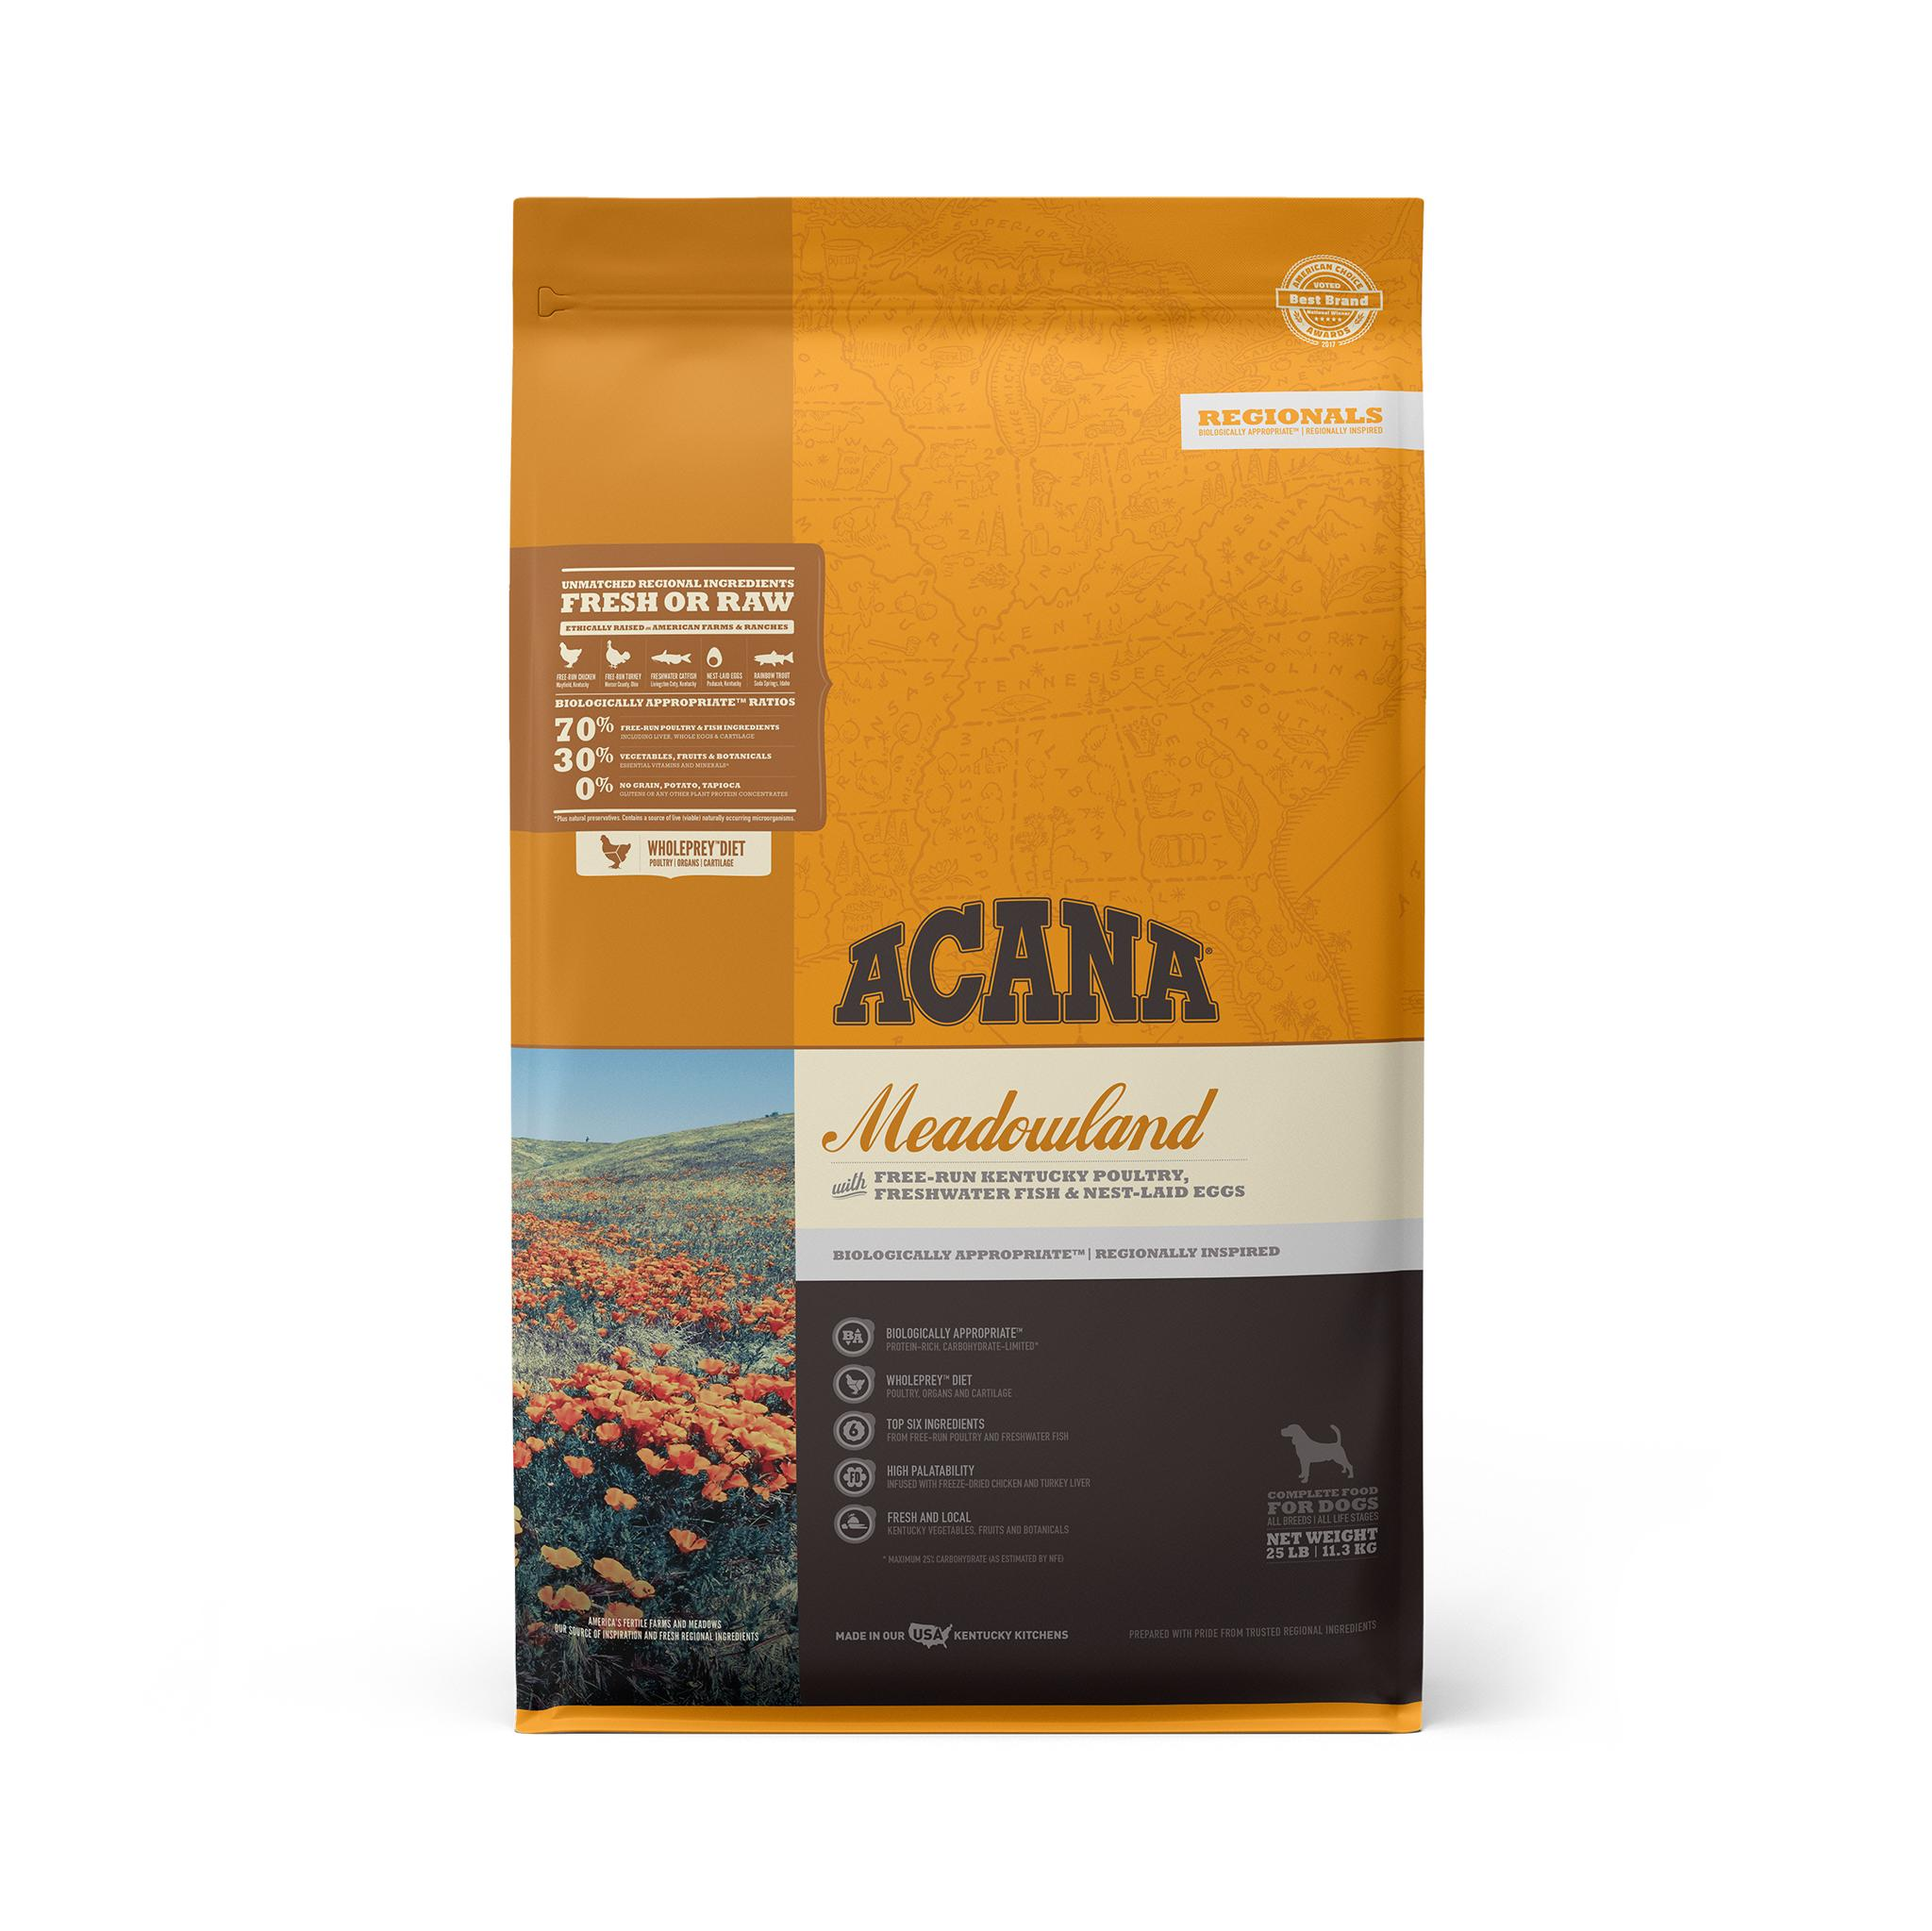 ACANA Regionals Meadowland Grain-Free Dry Dog Food, 25-lb Size: 25-lb